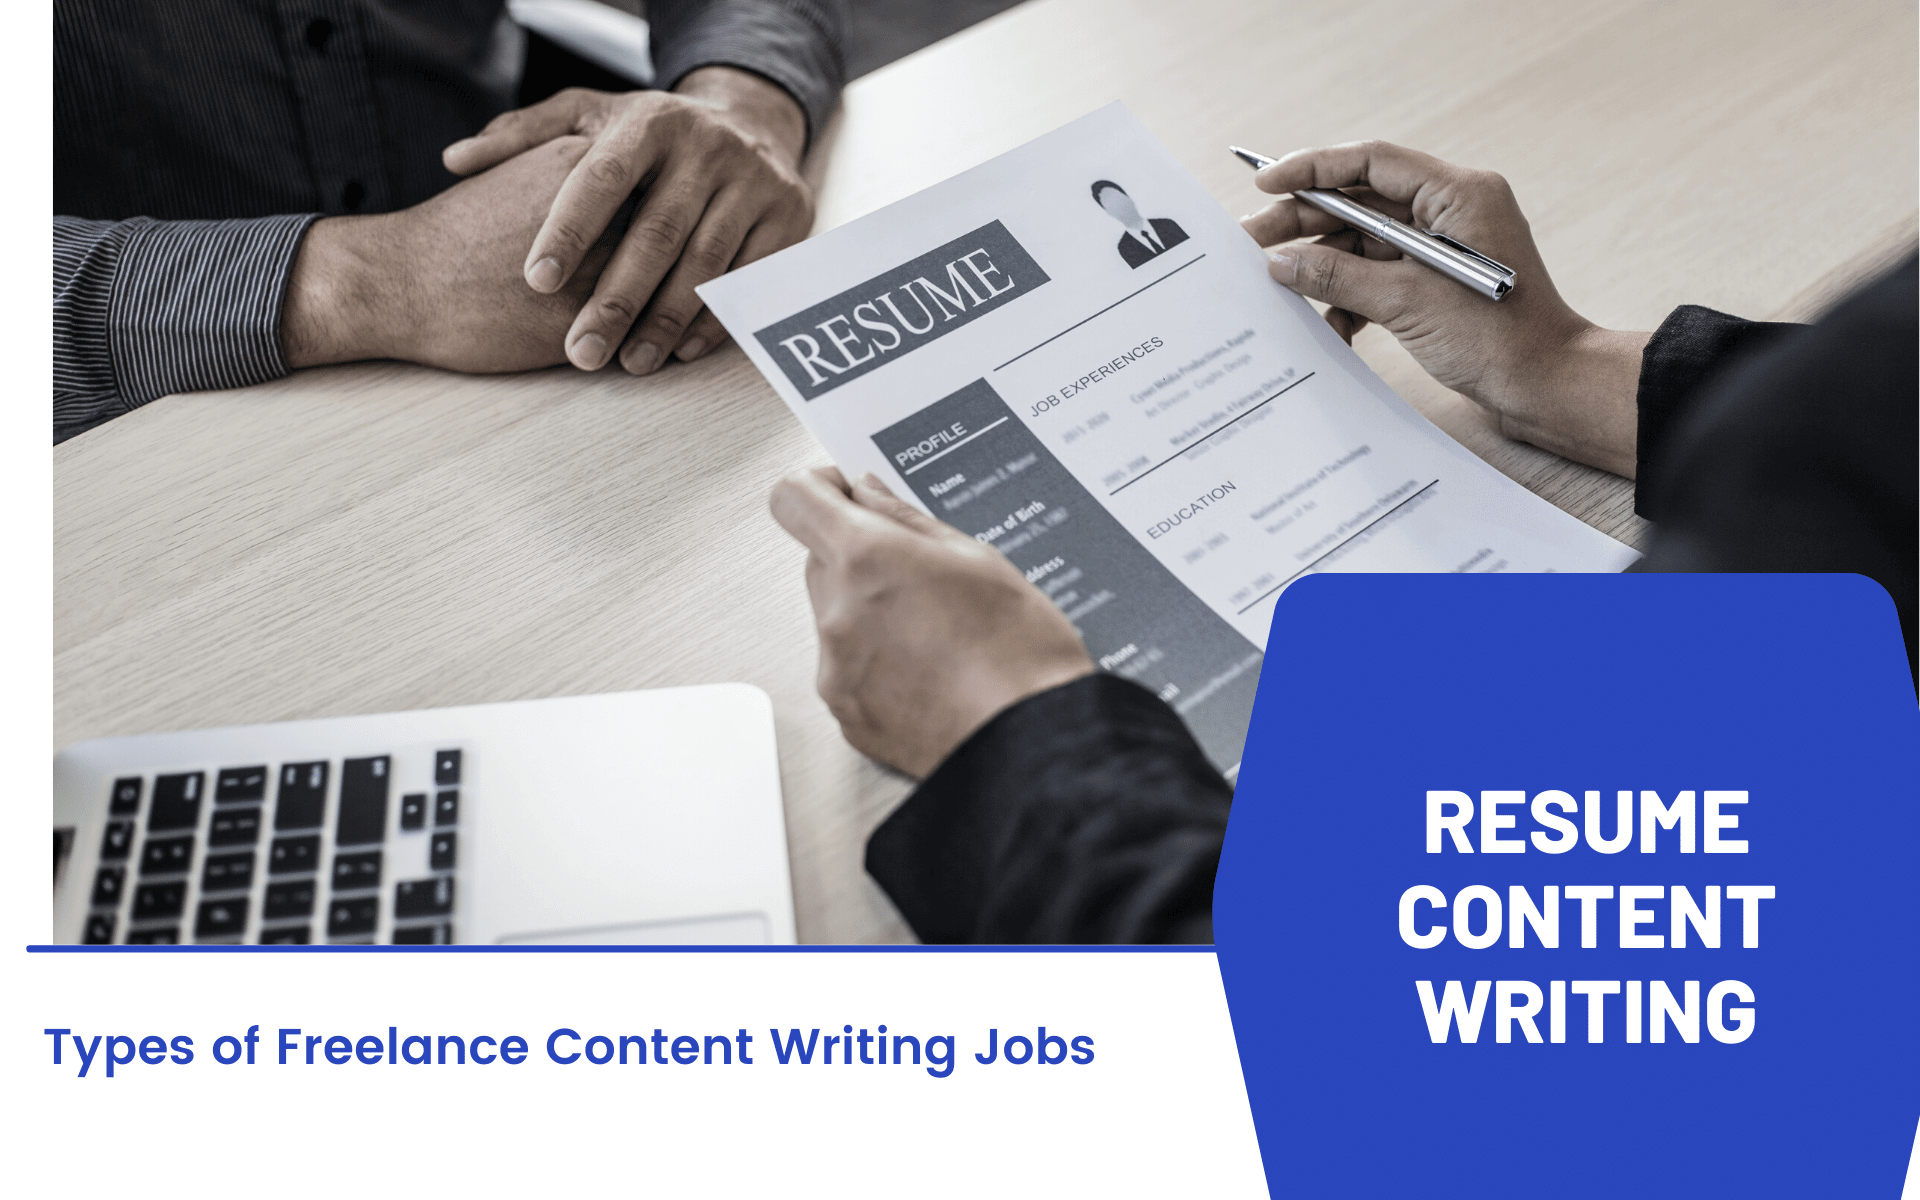 Resume Content Writing